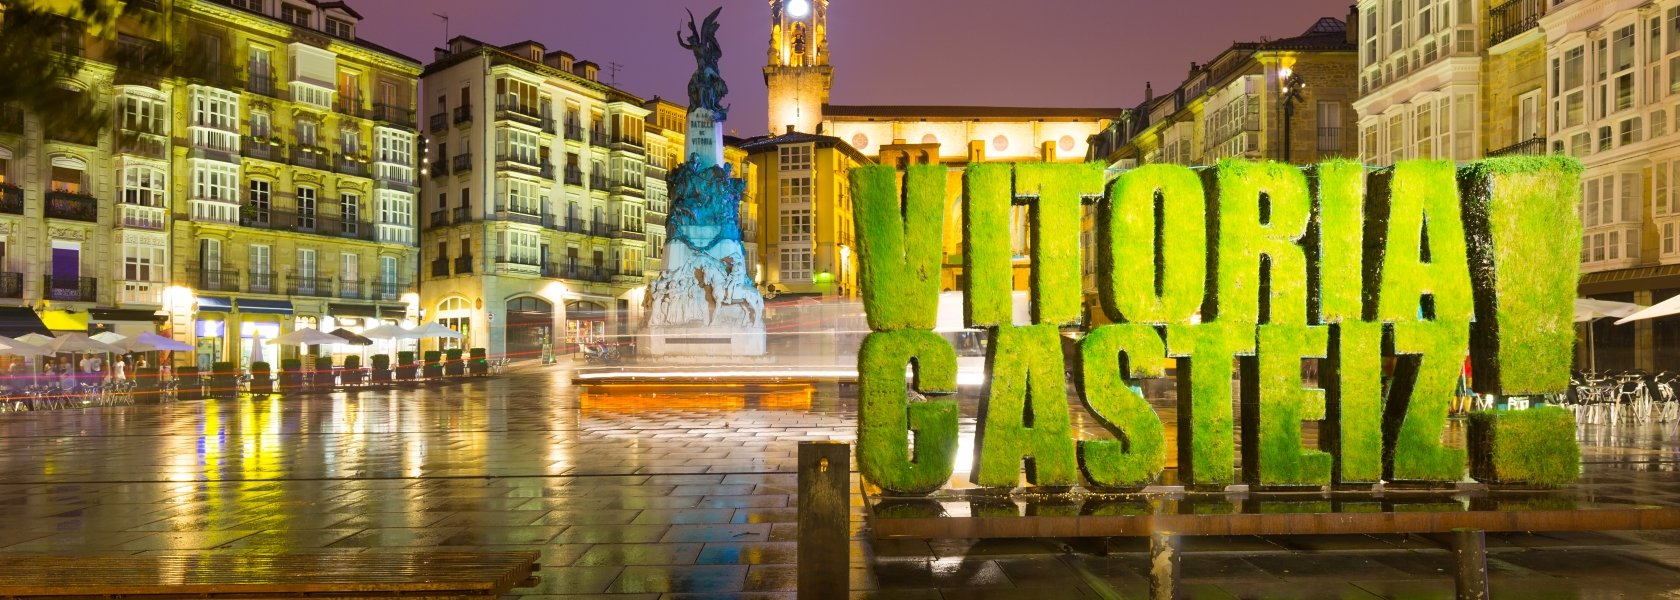 Discover Vitoria Gasteiz Spain Trails